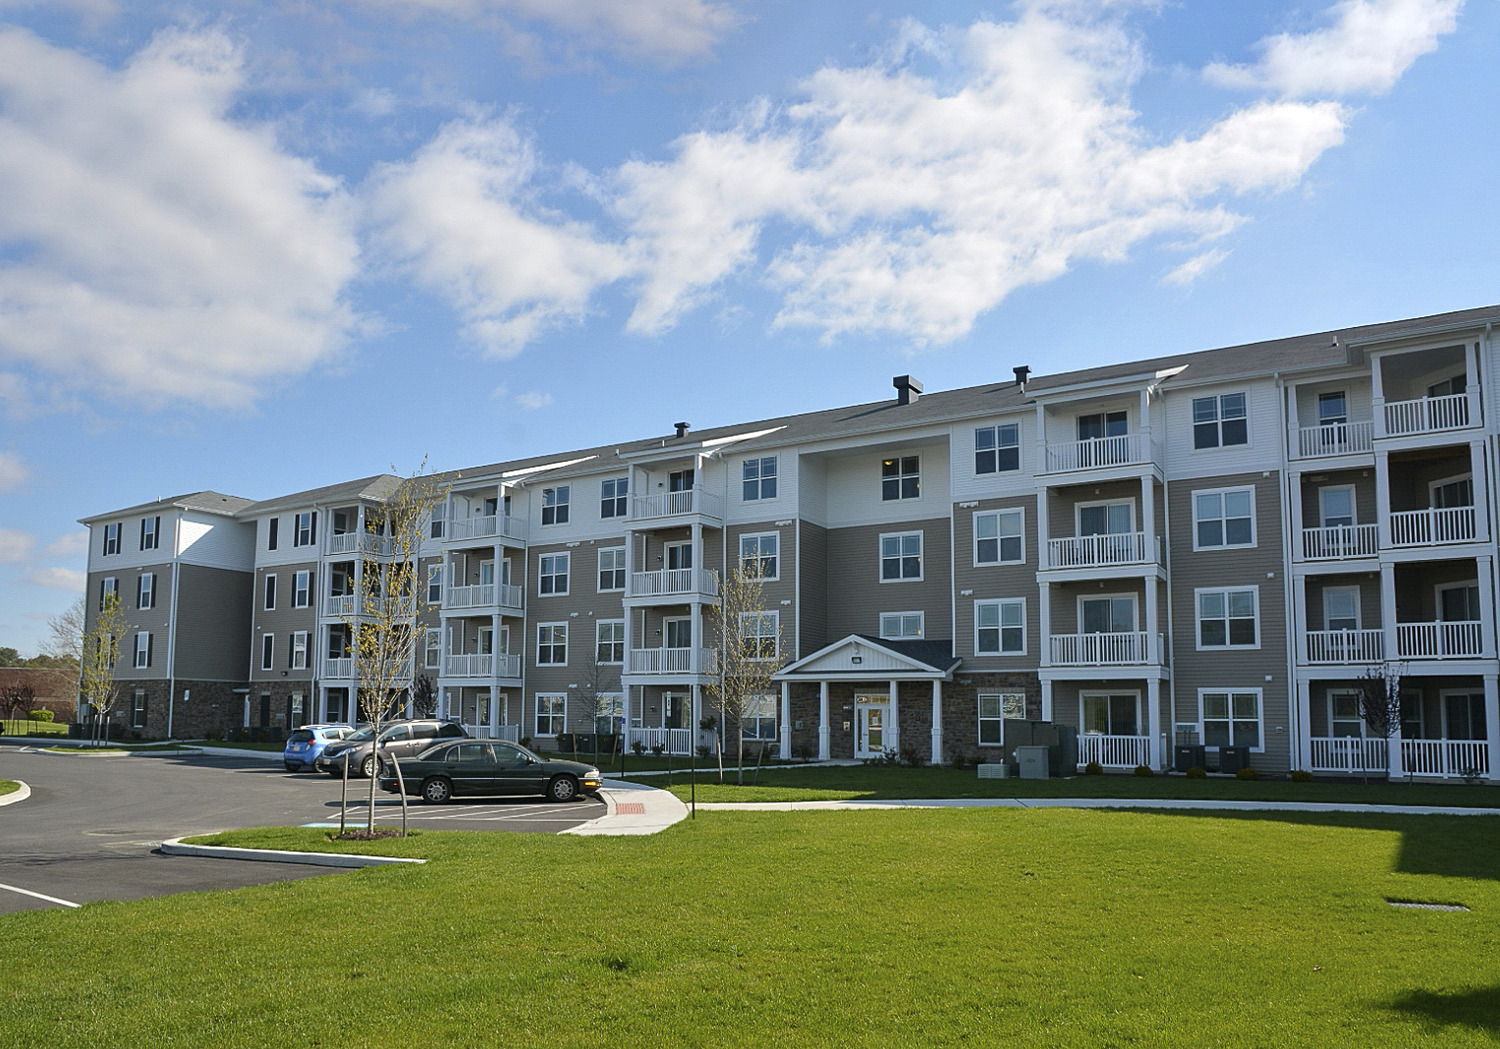 CBG builds Addison Court Apartments, a 300-Unit Apartment Community with Eight Detached Garages in Salisbury, MD - Image #2